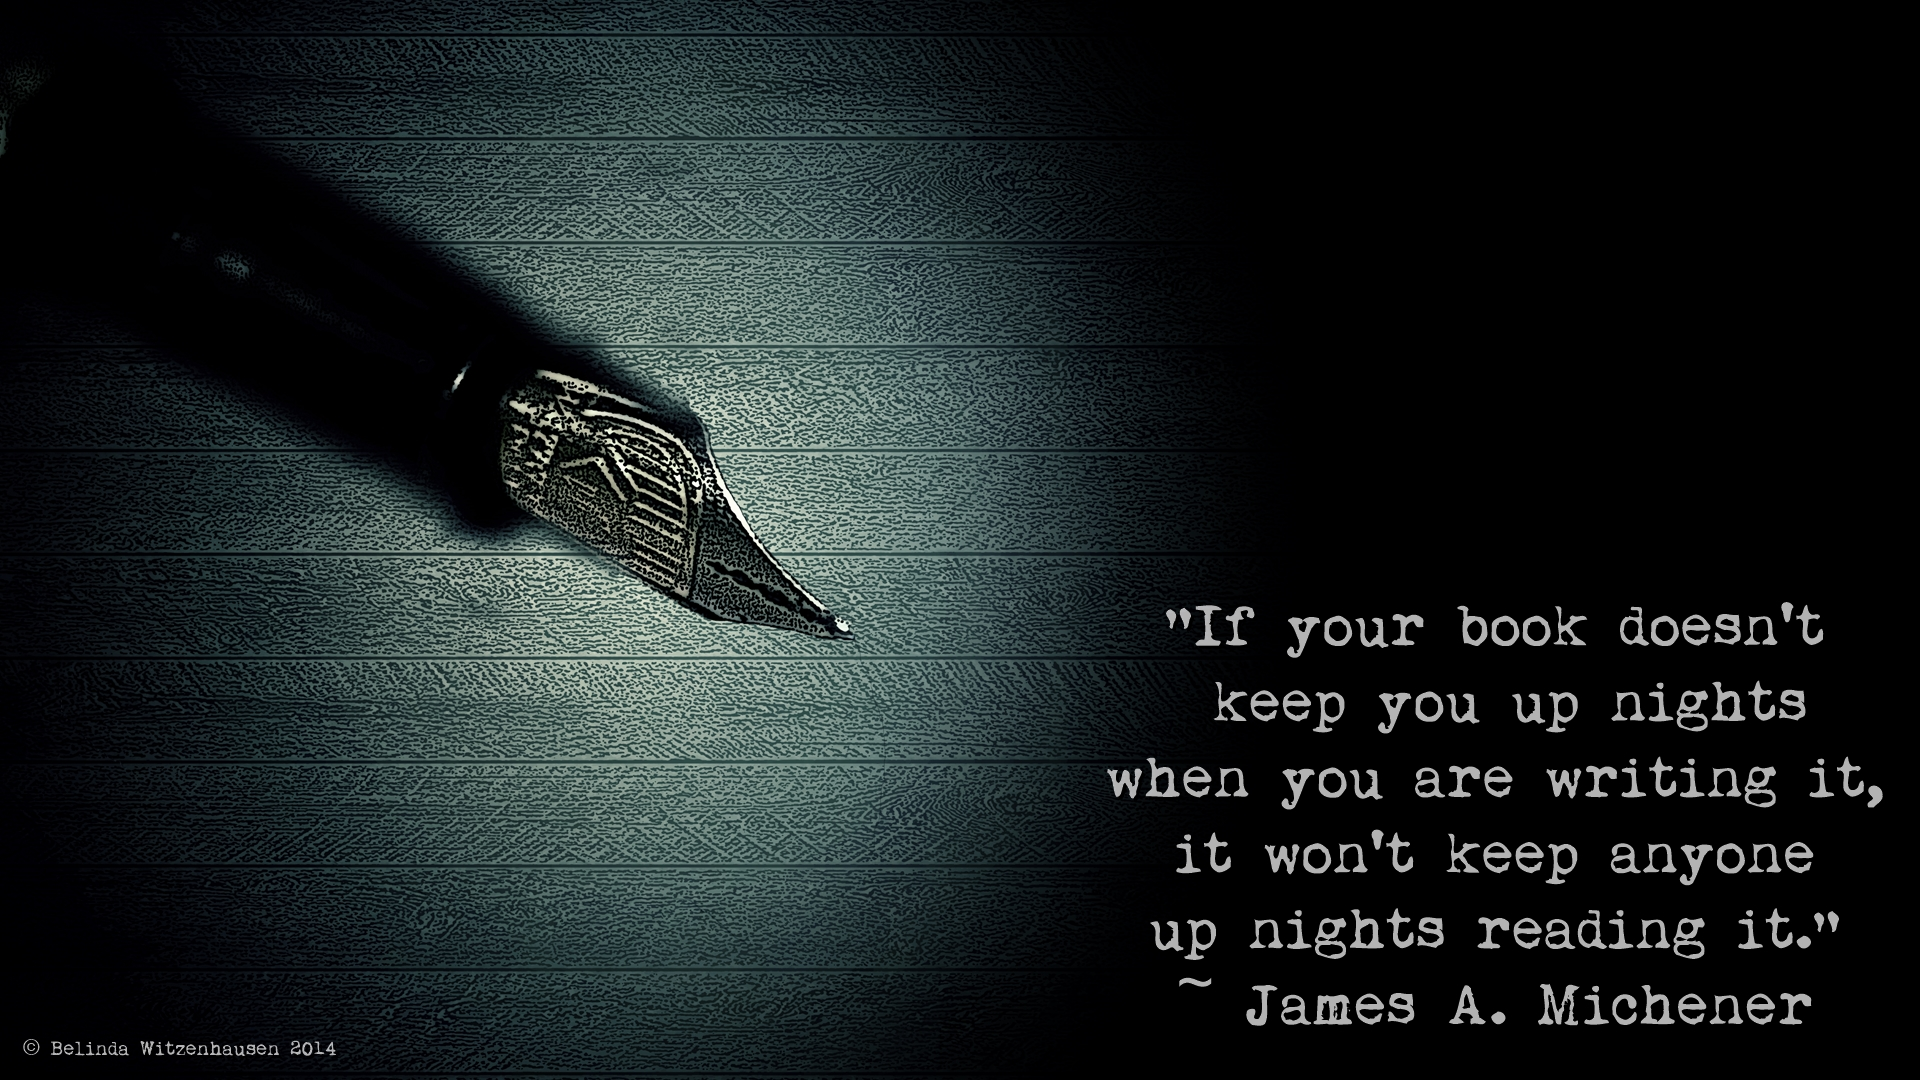 Wednesday Wallpaper For Writers February 19th 2014 Via